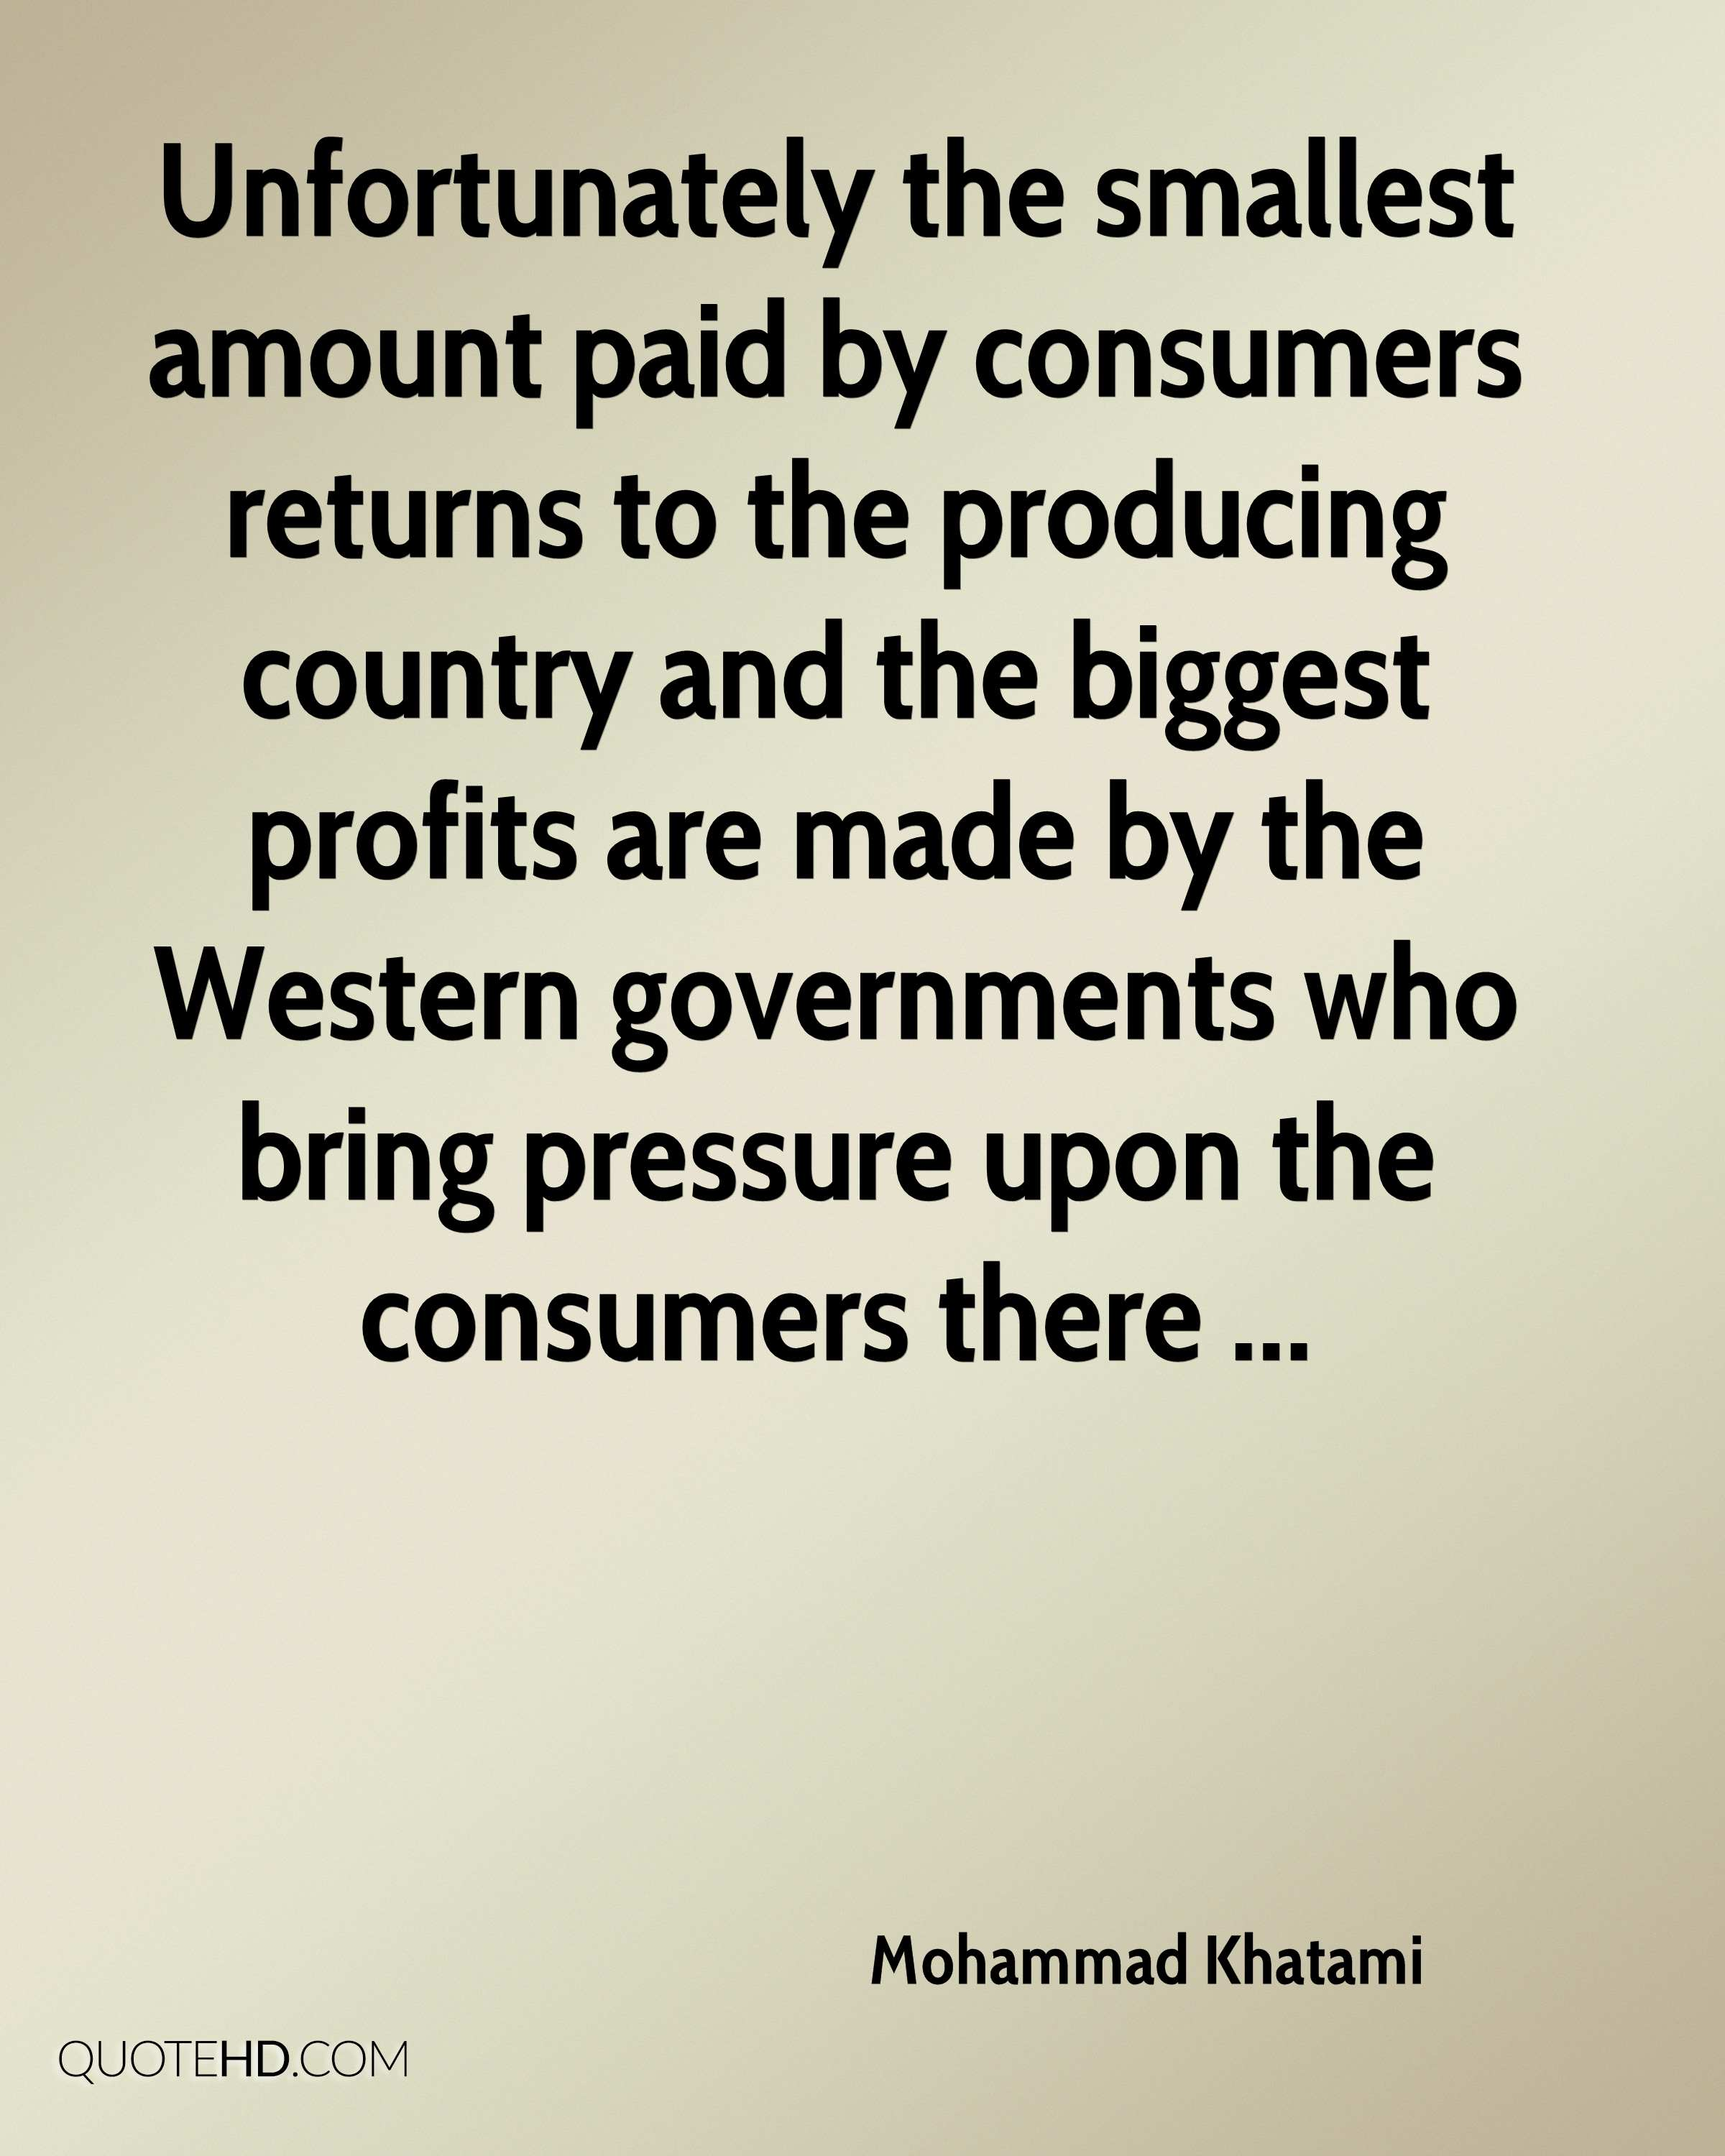 Unfortunately the smallest amount paid by consumers returns to the producing country and the biggest profits are made by the Western governments who bring pressure upon the consumers there ...